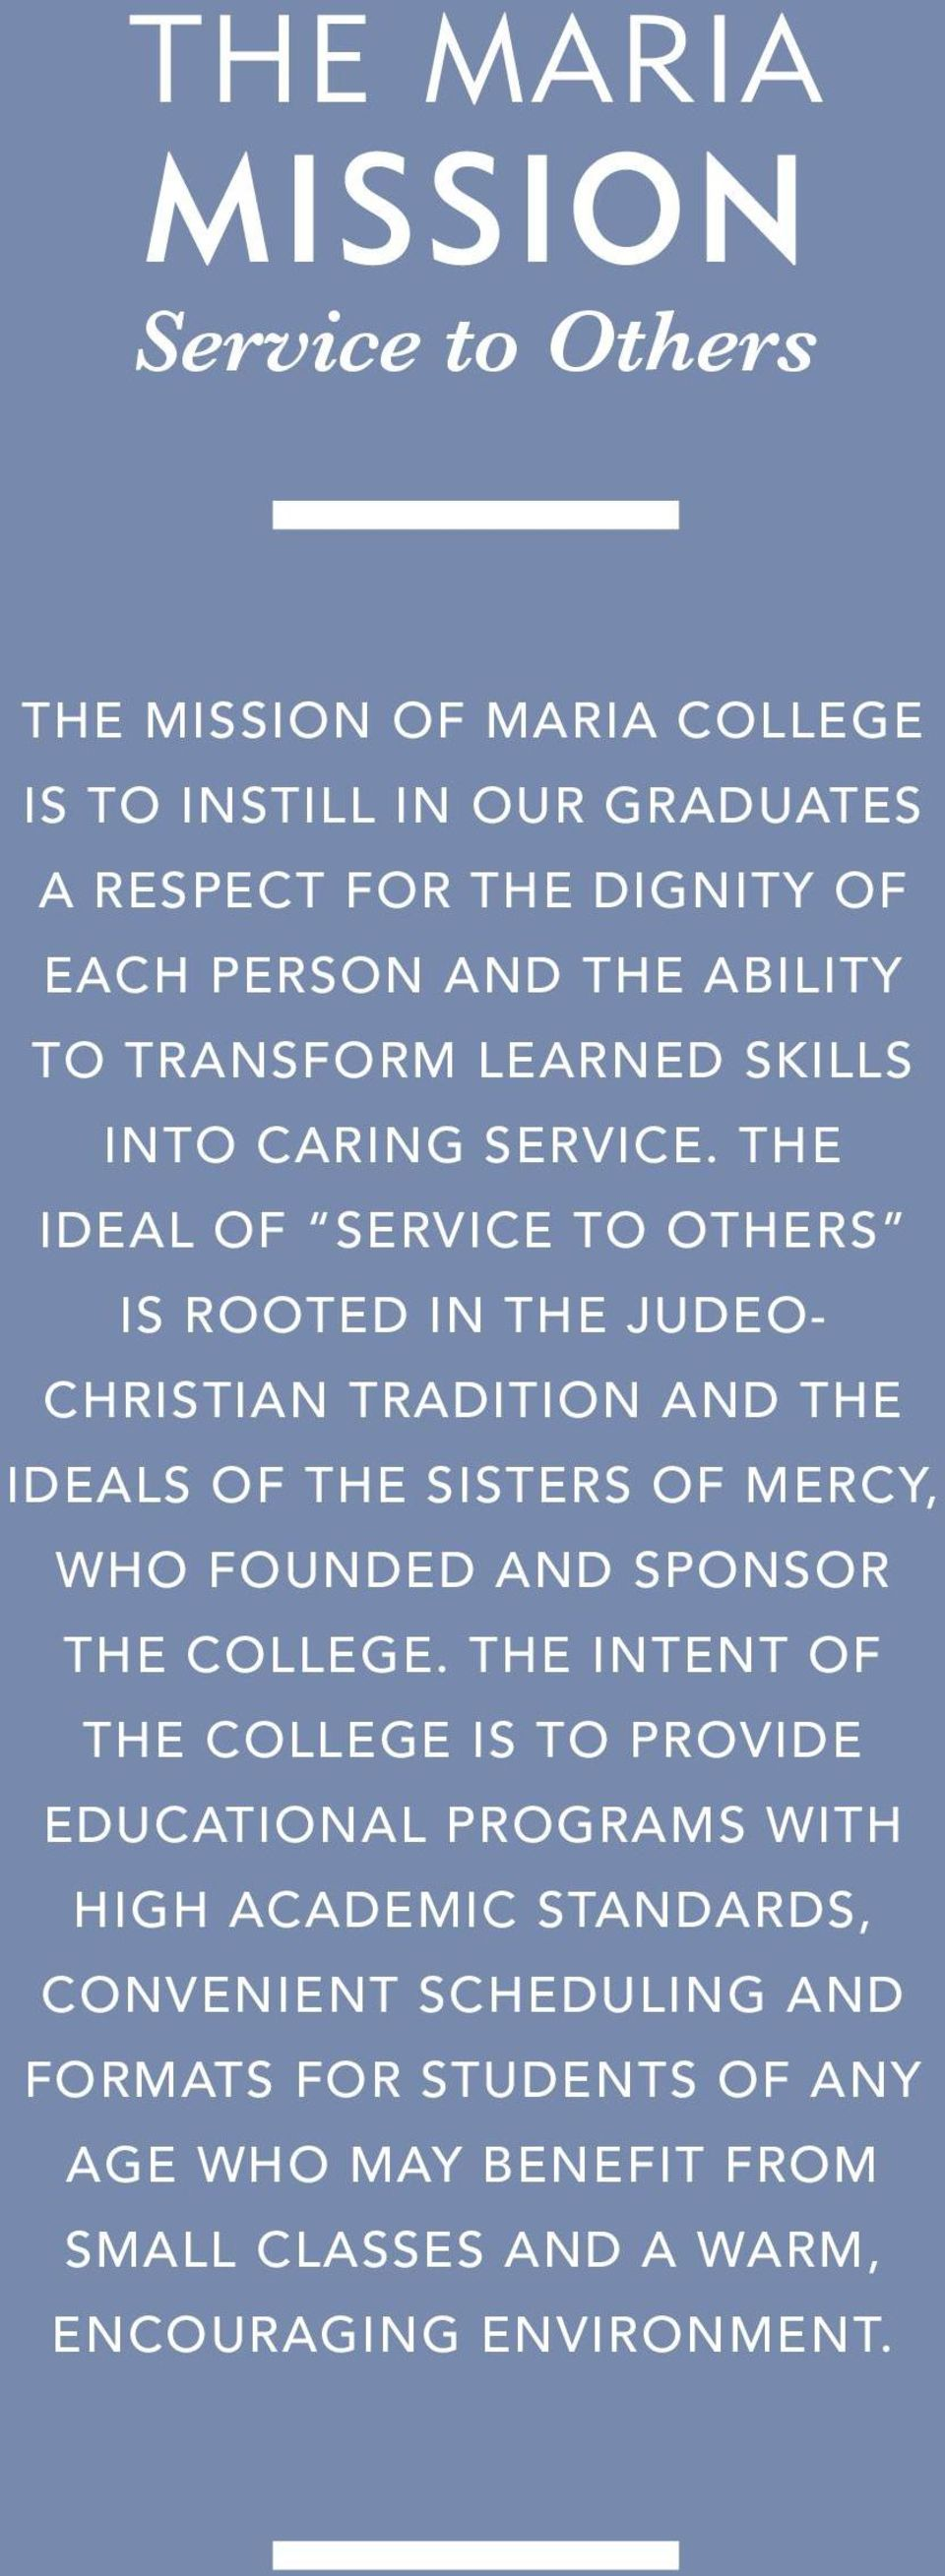 THE IDEAL OF SERVICE TO OTHERS IS ROOTED IN THE JUDEO- CHRISTIAN TRADITION AND THE IDEALS OF THE SISTERS OF MERCY, WHO FOUNDED AND SPONSOR THE